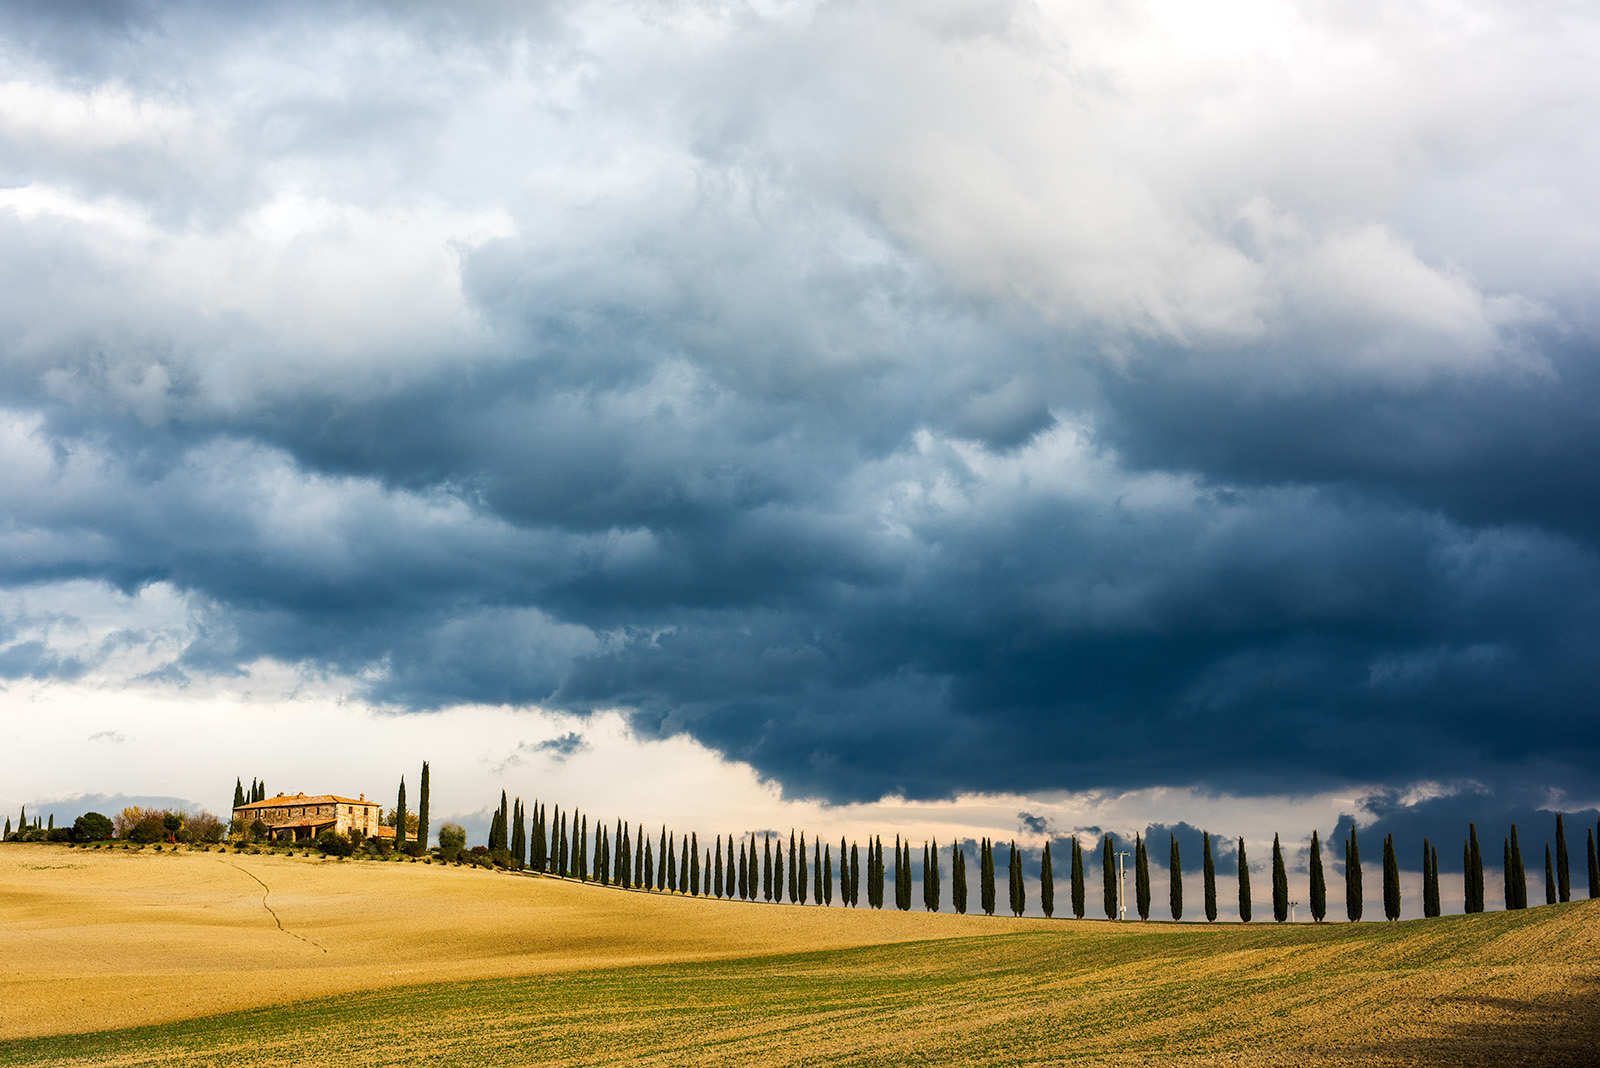 Oncoming storm & Cypress rows